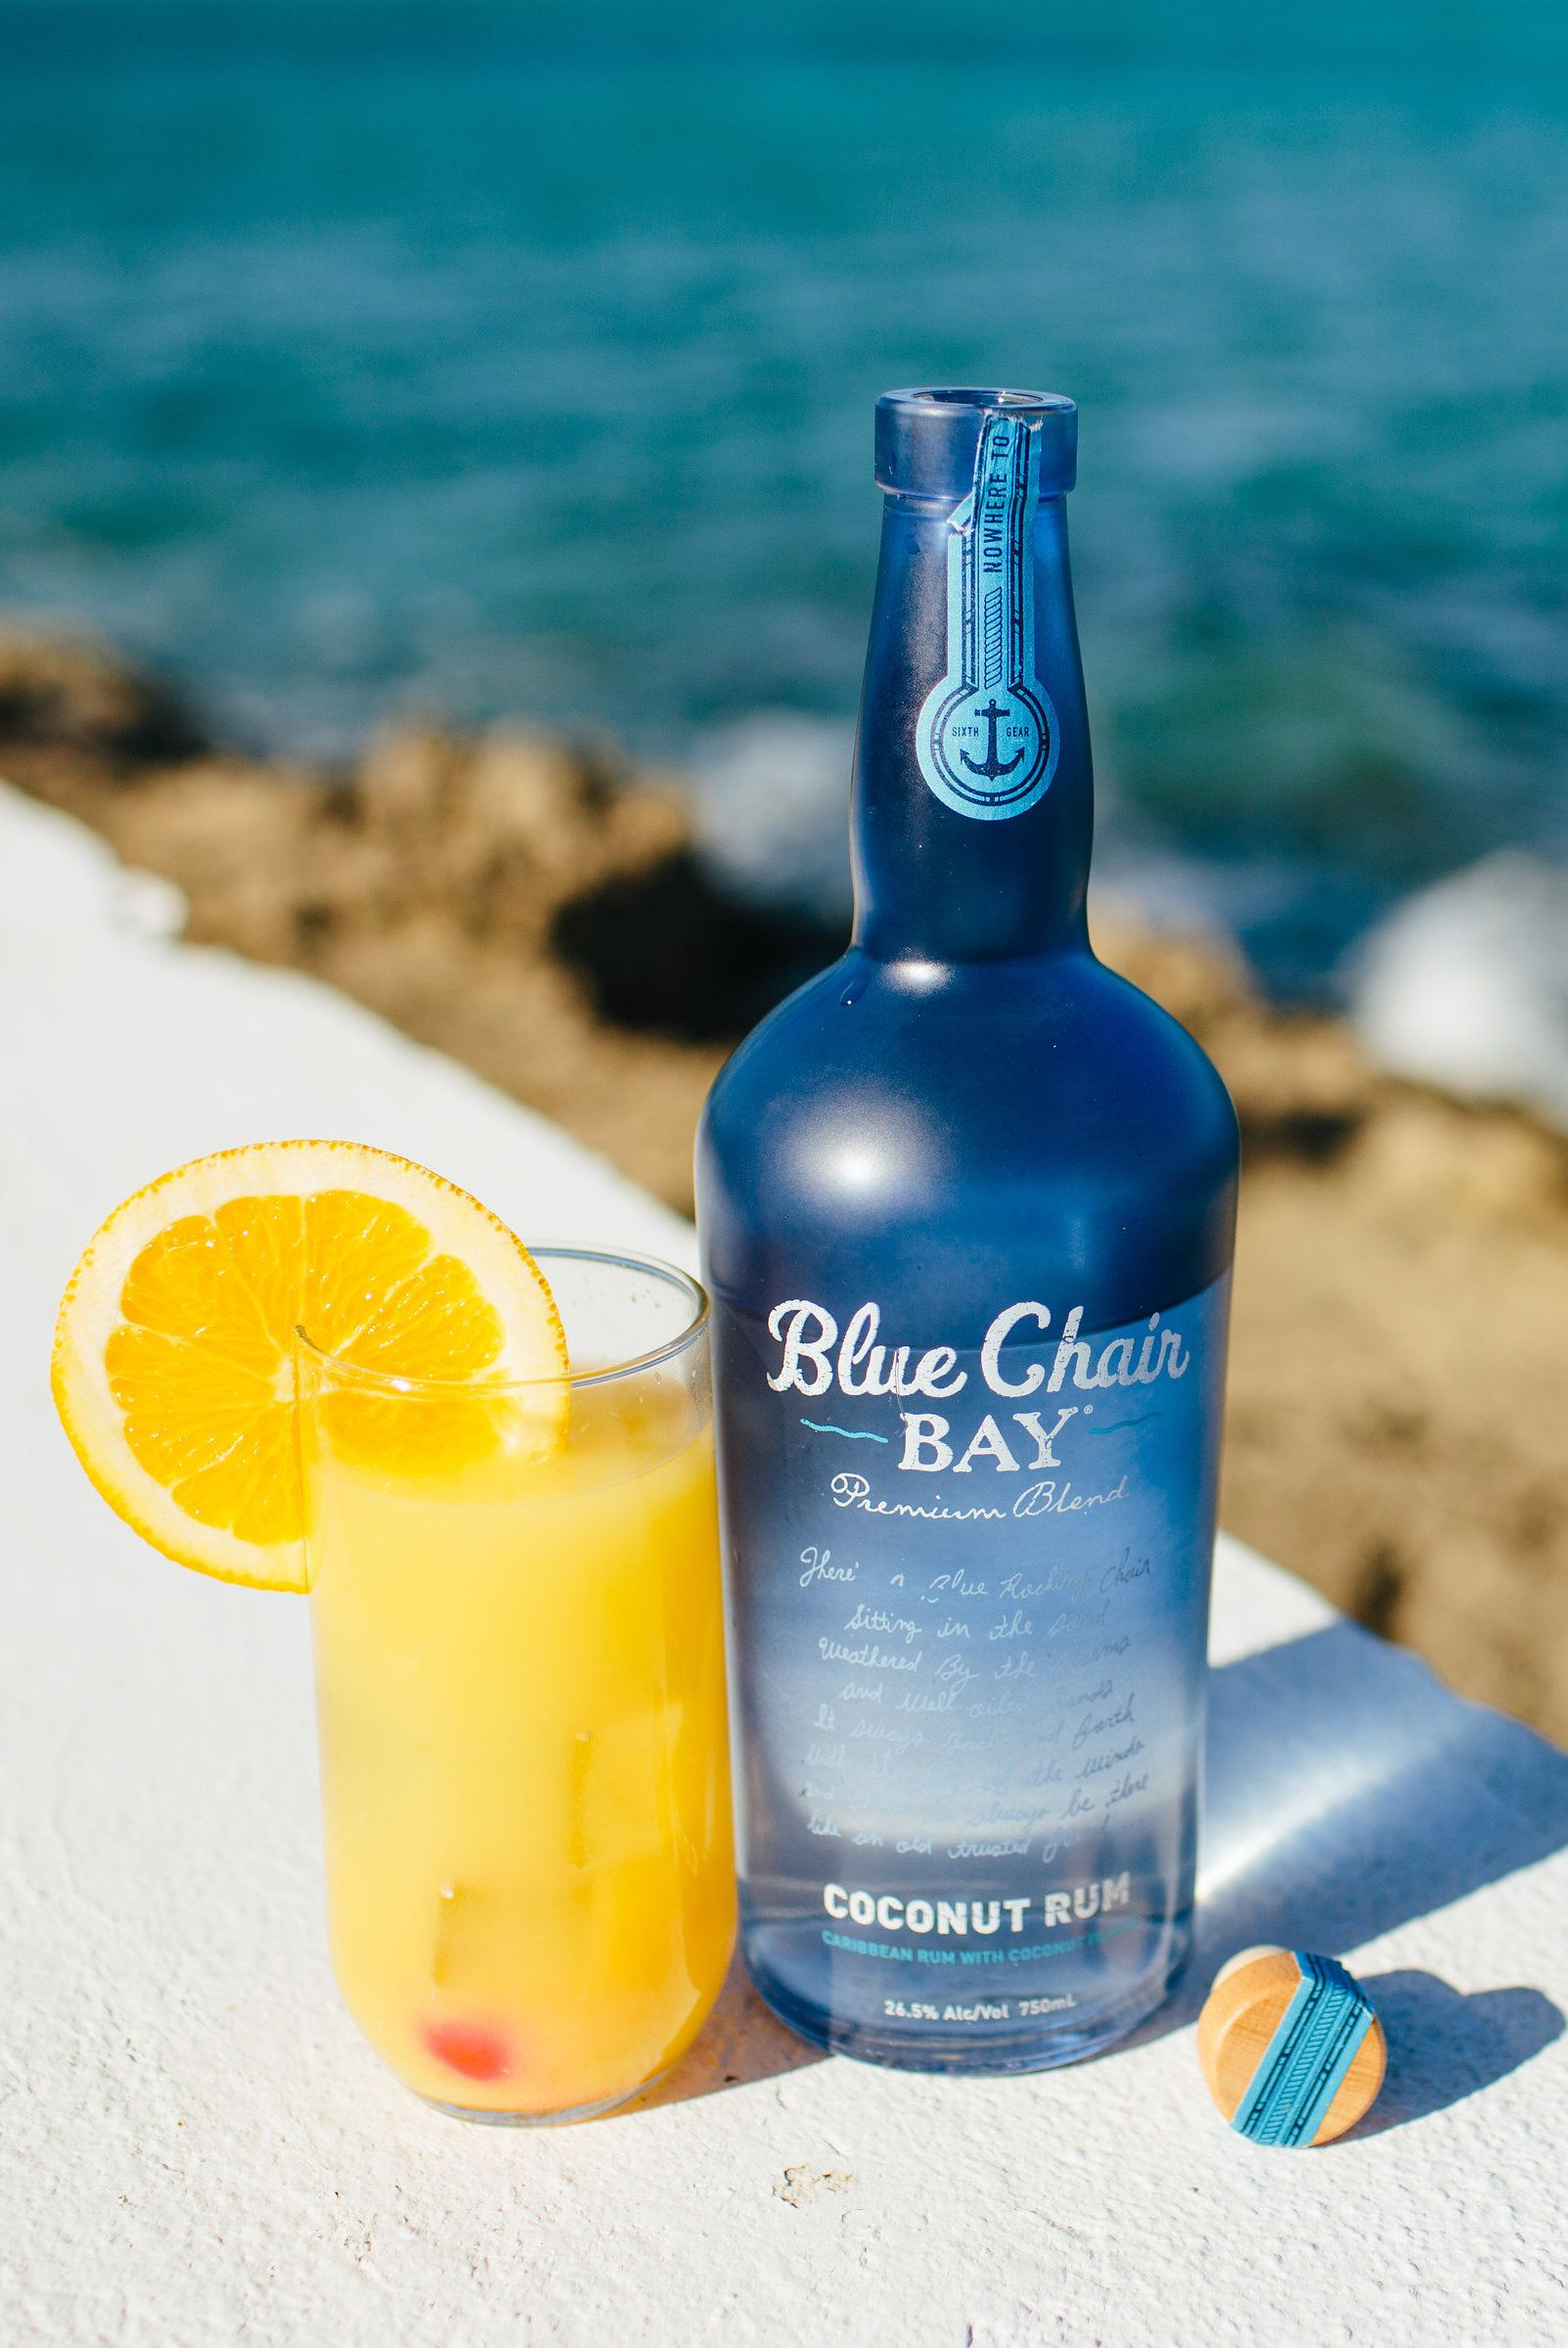 Blue Chair Bay Rum Island Girl Cocktail 1 5 Oz Blue Chair Bay Coconut Rum 1 Oz